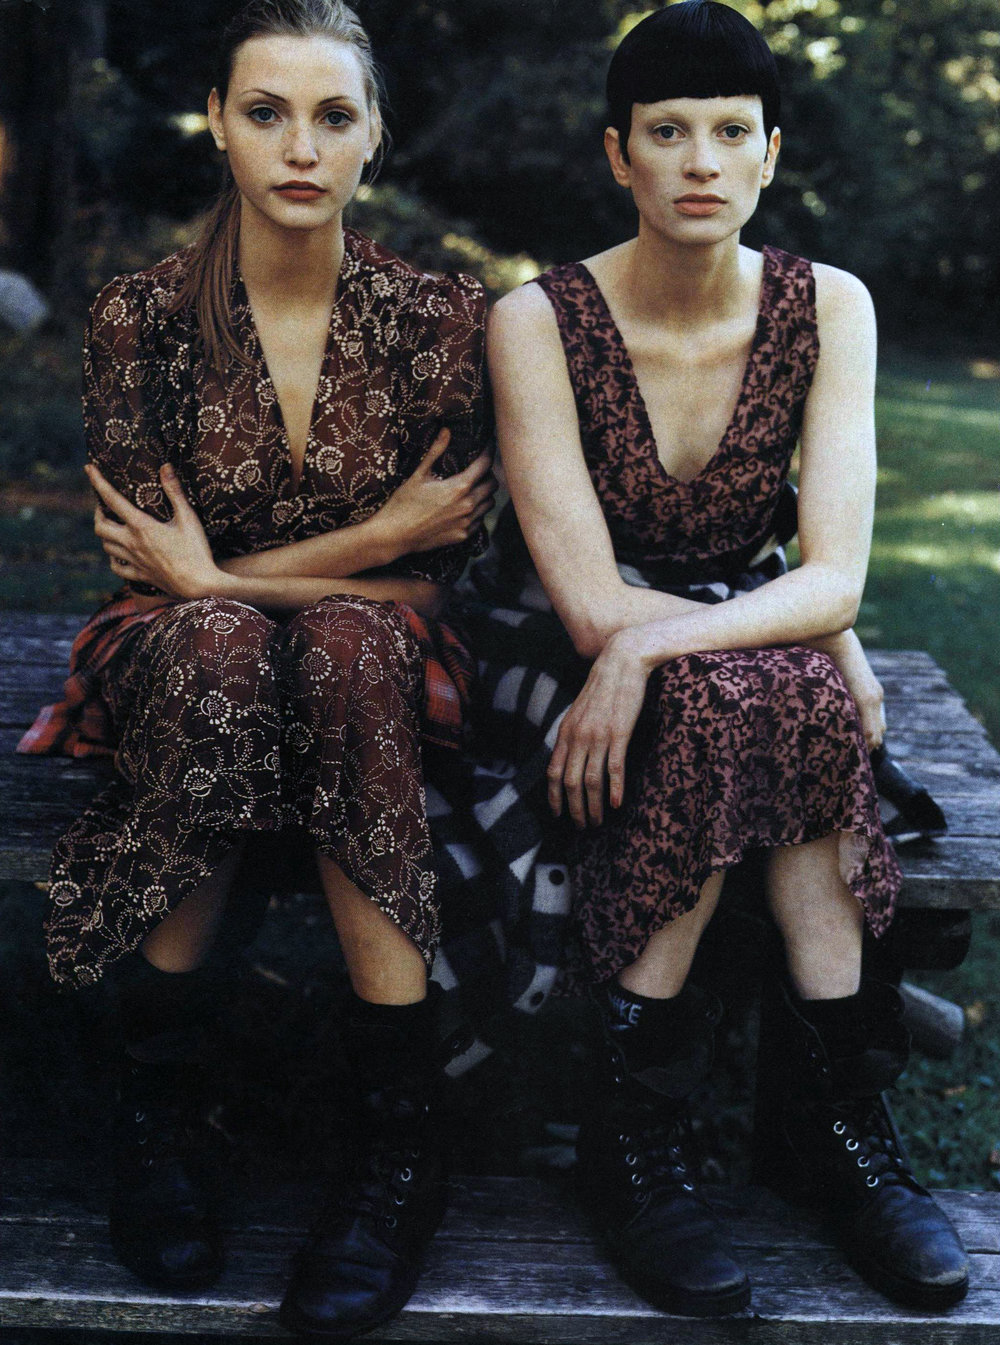 """The Grunge and Glory"" with Nadja Auermann and Kristen McMenamy in Sui dresses. Photo by Steven Meisel for Vogue, December 1992."